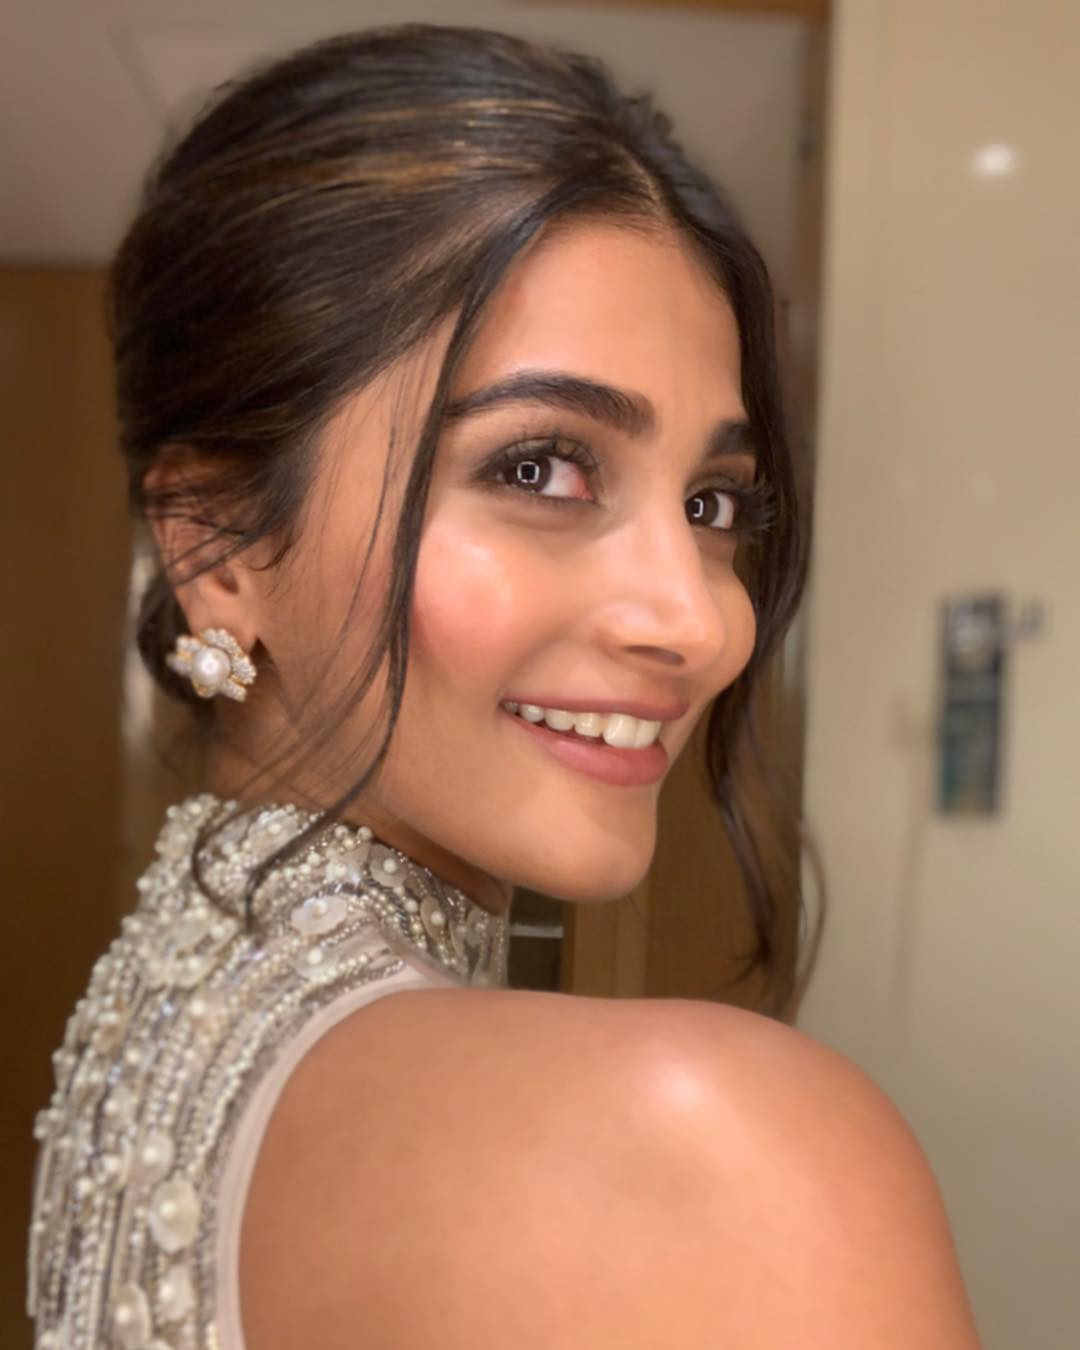 Pooja Hegde, Pooja Hegde Latest HOT and SEXY Photos download from Facebook, Bollywood Beautiful actress celebrities HD photos download